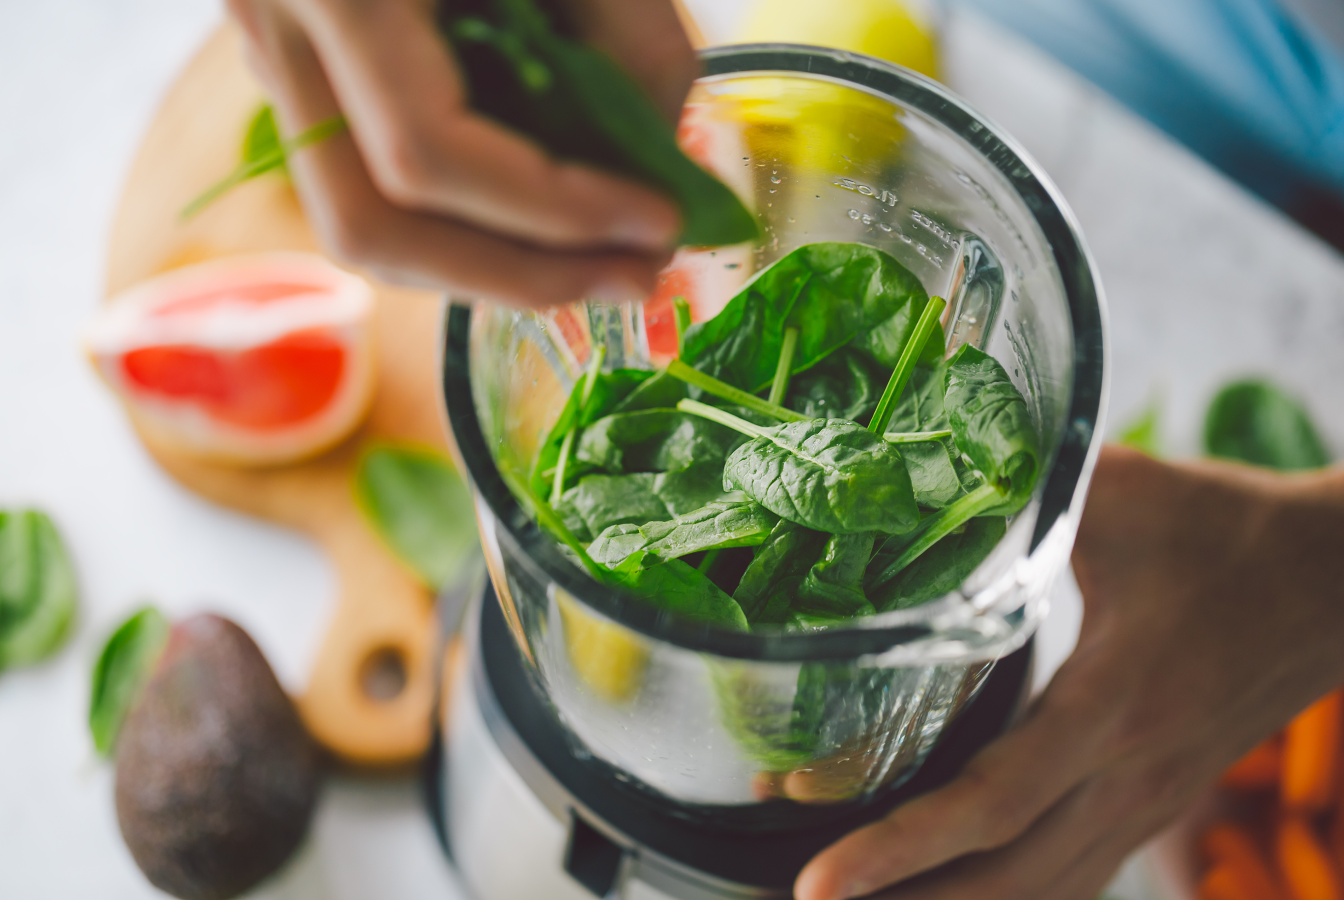 Spinach being blended for a plant-based smoothie